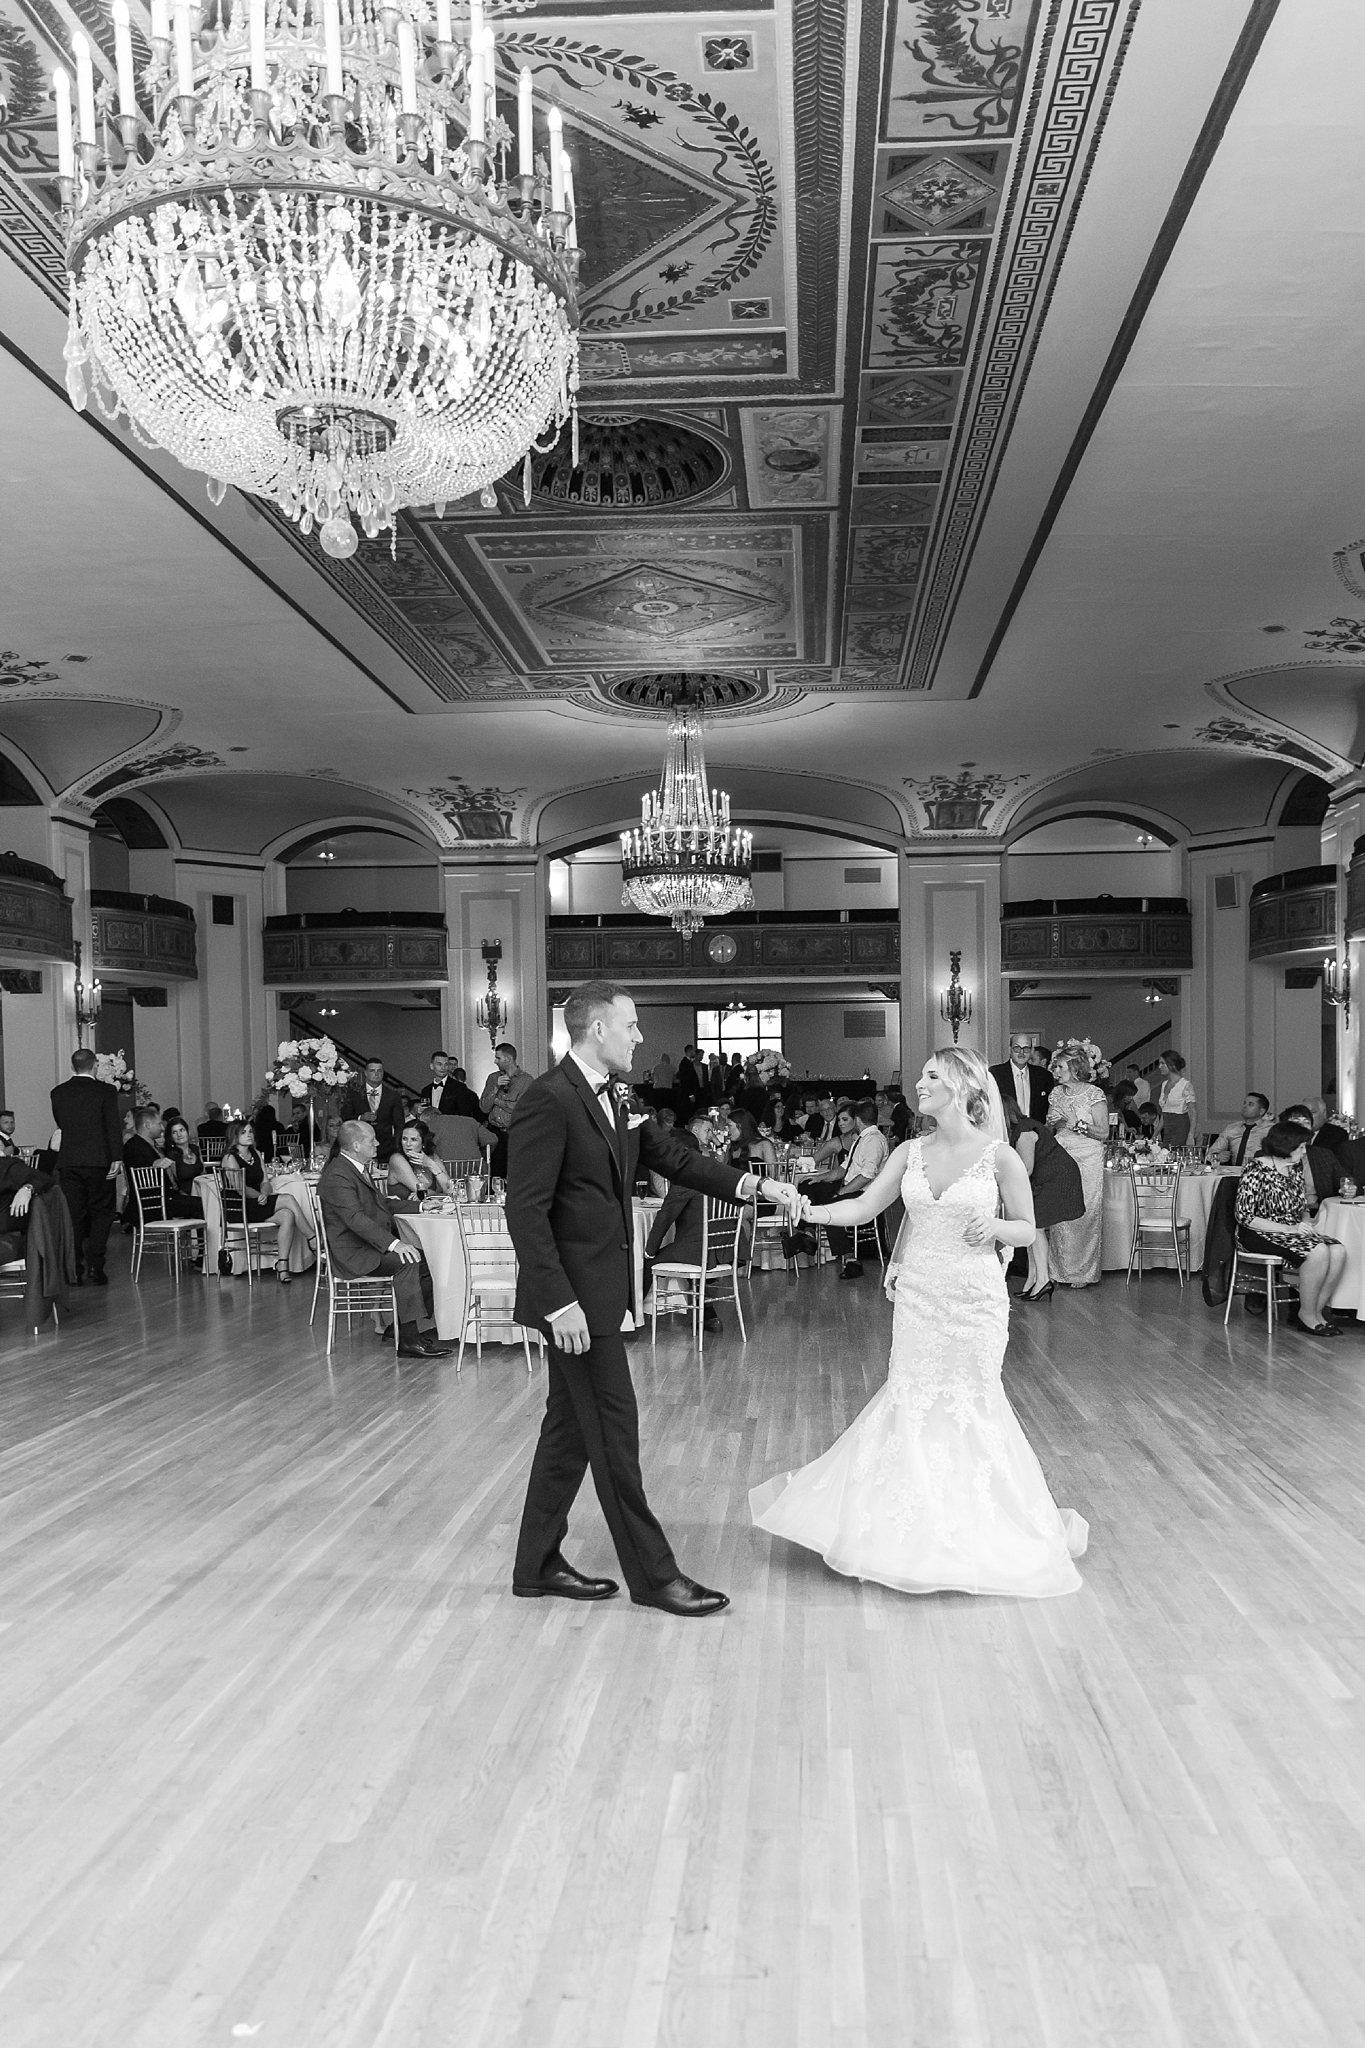 candid-romantic-wedding-photos-at-the-masonic-temple-belle-isle-detroit-institute-of-arts-in-detroit-michigan-by-courtney-carolyn-photography_0107.jpg